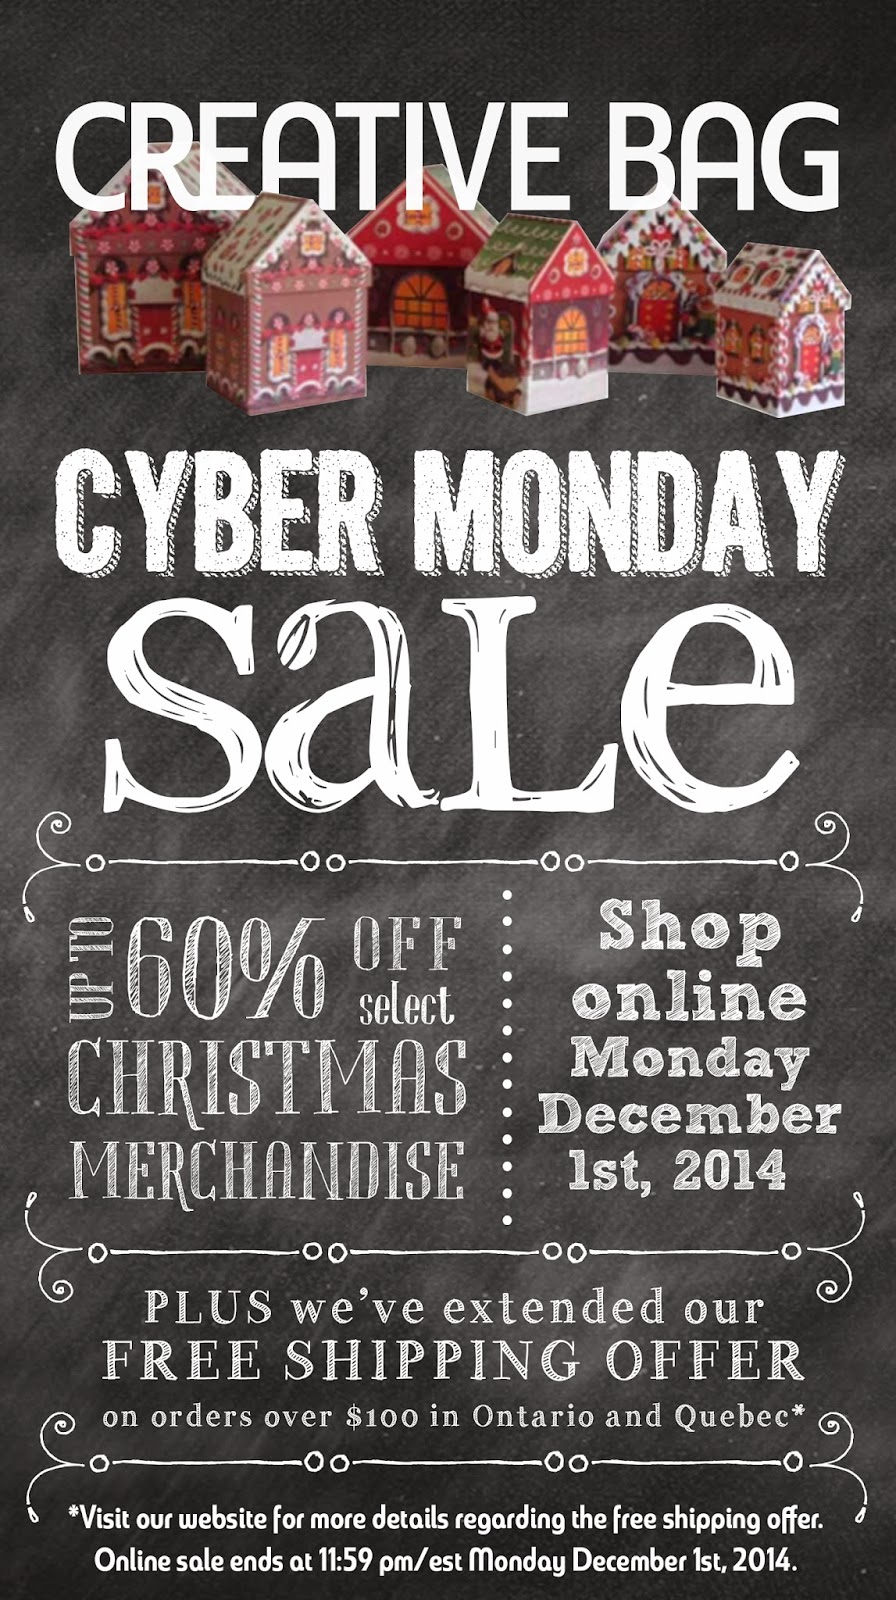 Cyber Monday 2014 at Creative Bag